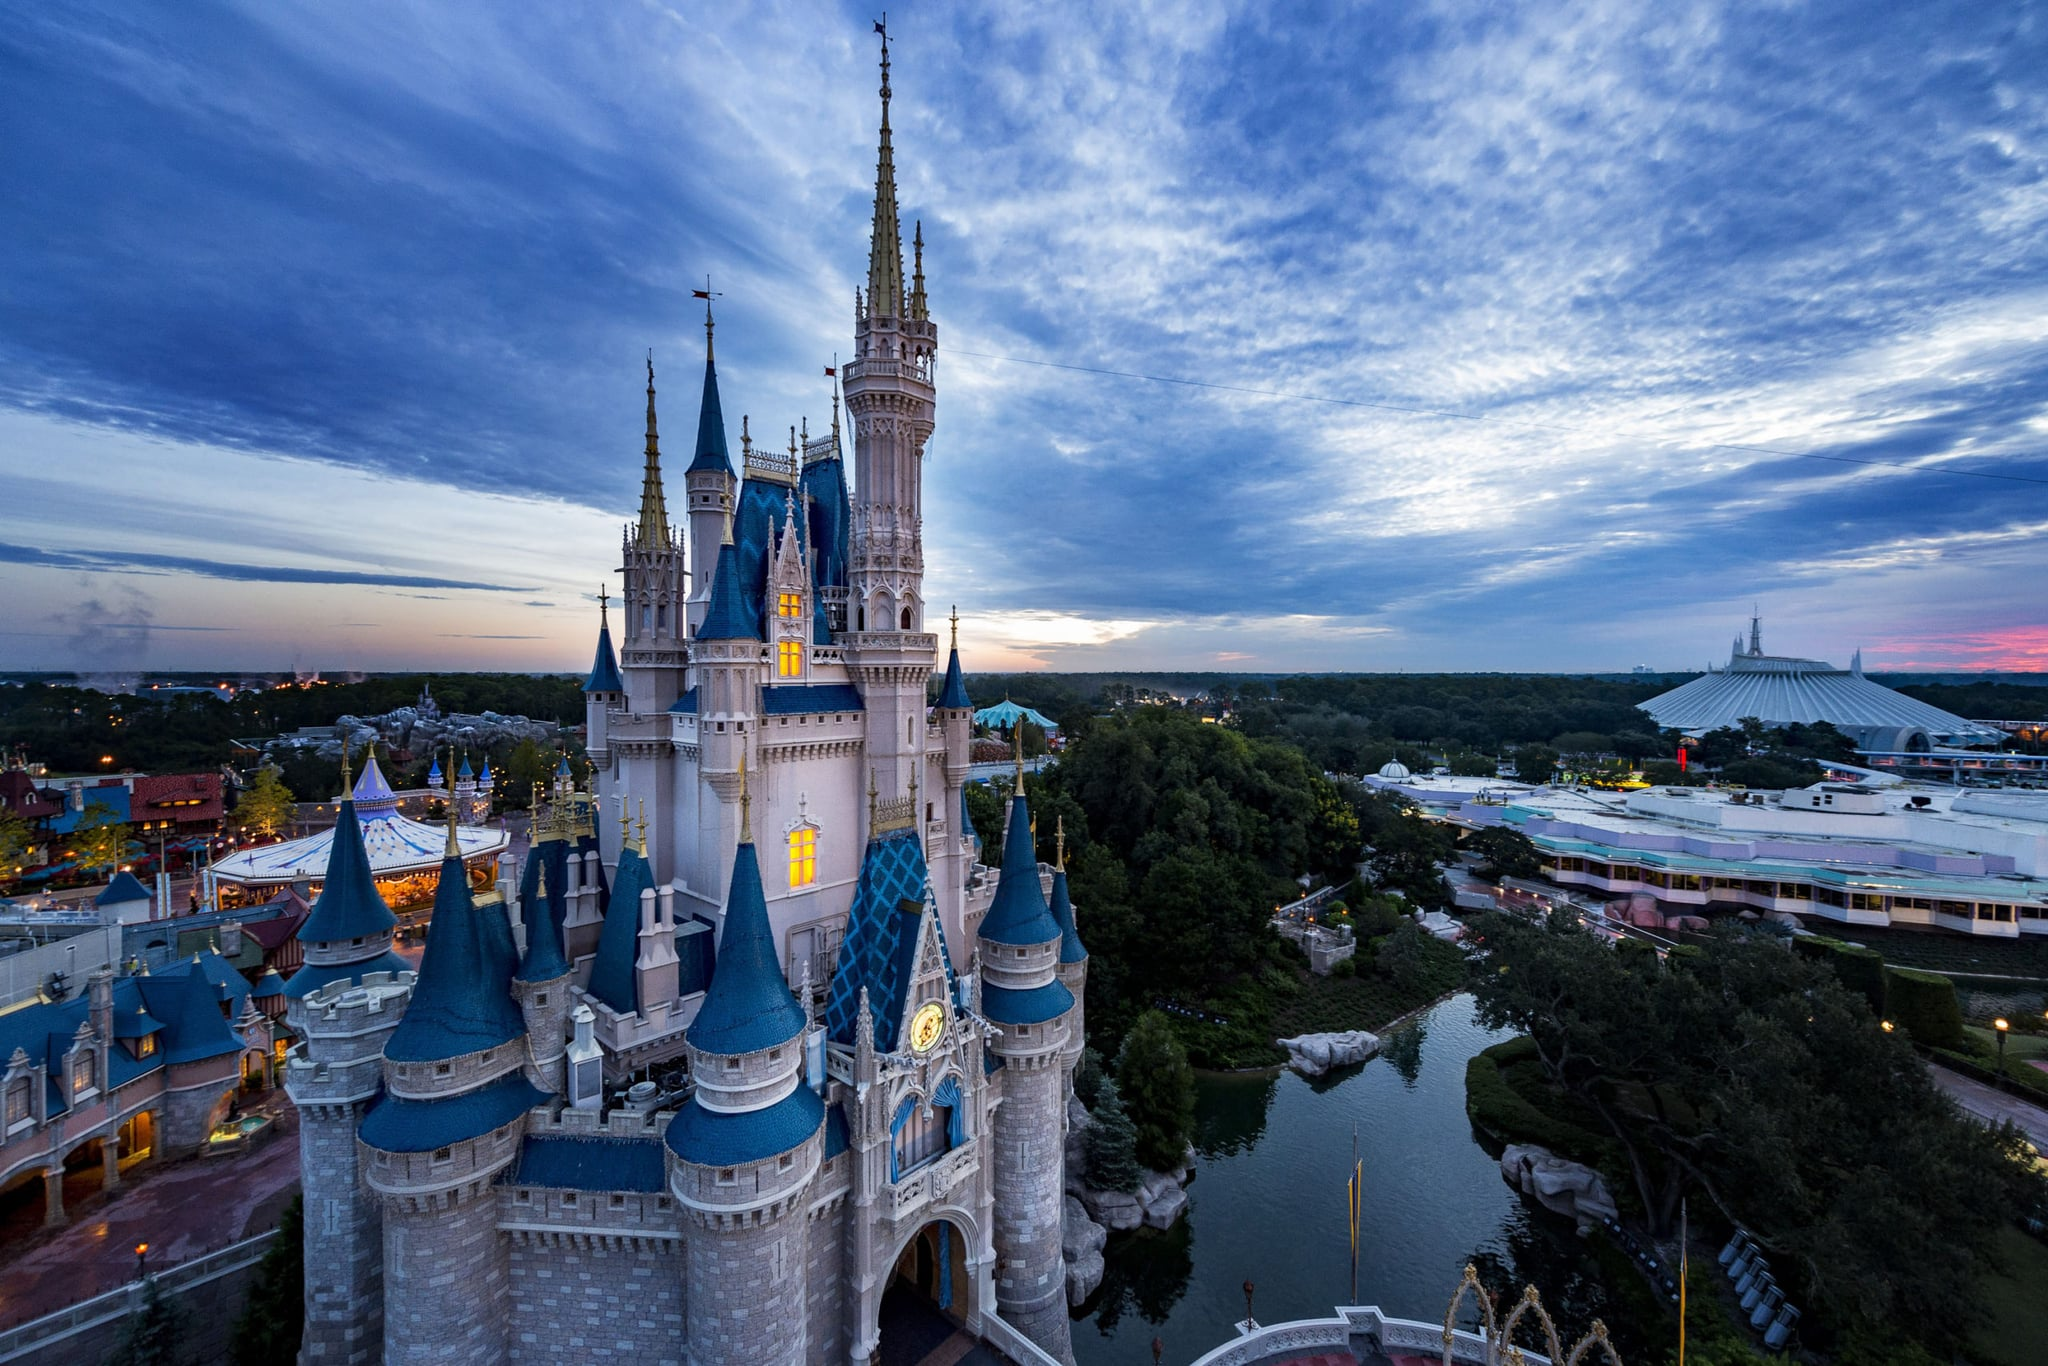 Walt Disney World Resort theme parks in Lake Buena Vista, Fla., plan to begin a phased reopening in July, pending approval from local and state authorities. Magic Kingdom Park (pictured) and Disney's Animal Kingdom are planned to reopen on July 11, 2020, followed by EPCOT and Disney's Hollywood Studios on July 15, 2020. (Matt Stroshane, photographer)